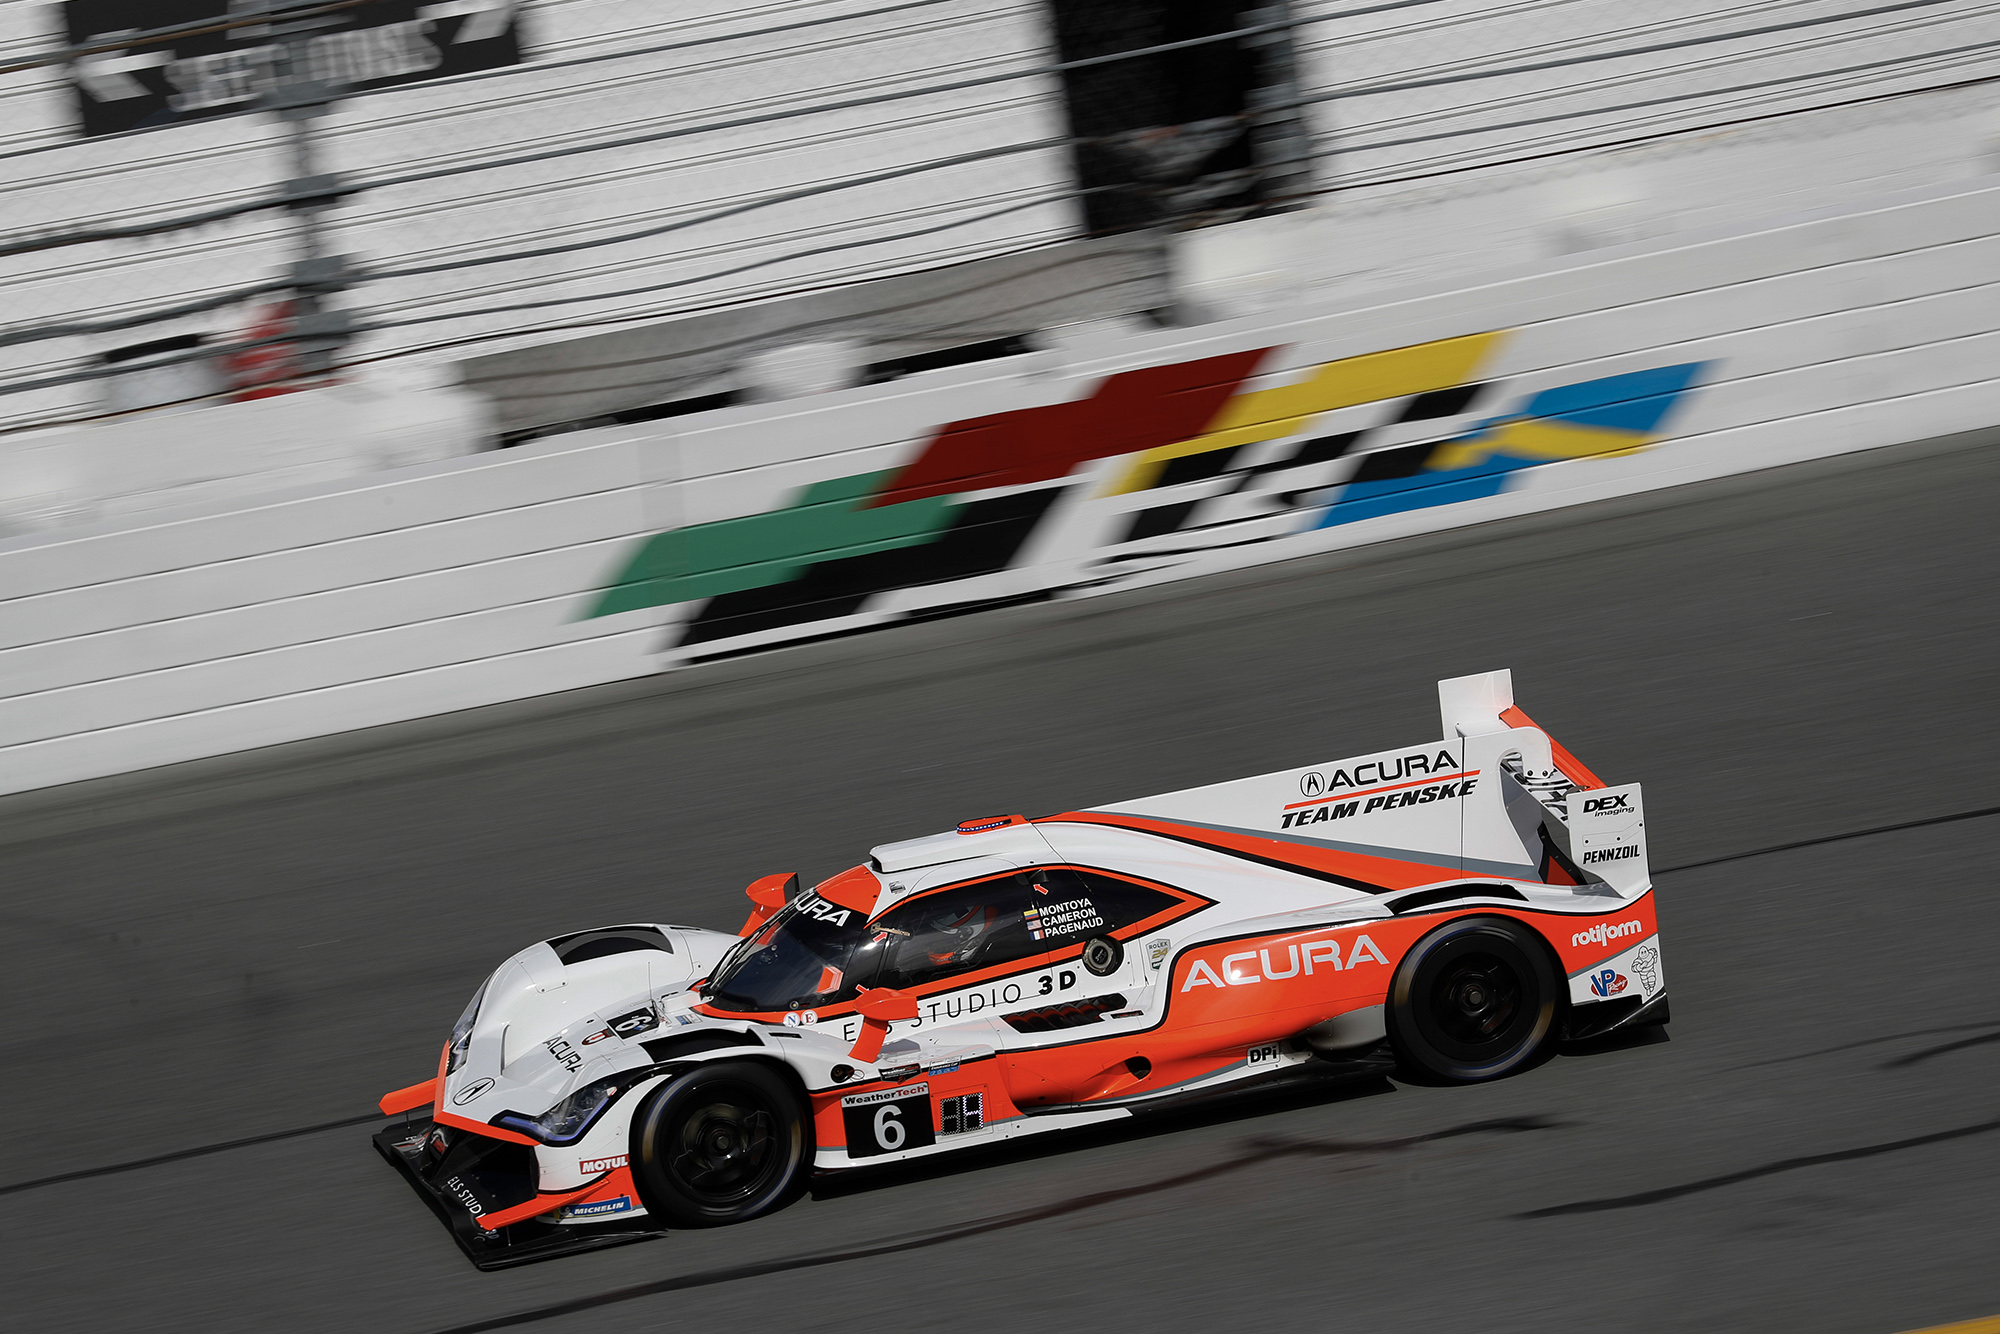 Juan Pablo Montoya's Acura Team Penske on track at the 2020 Daytona 24